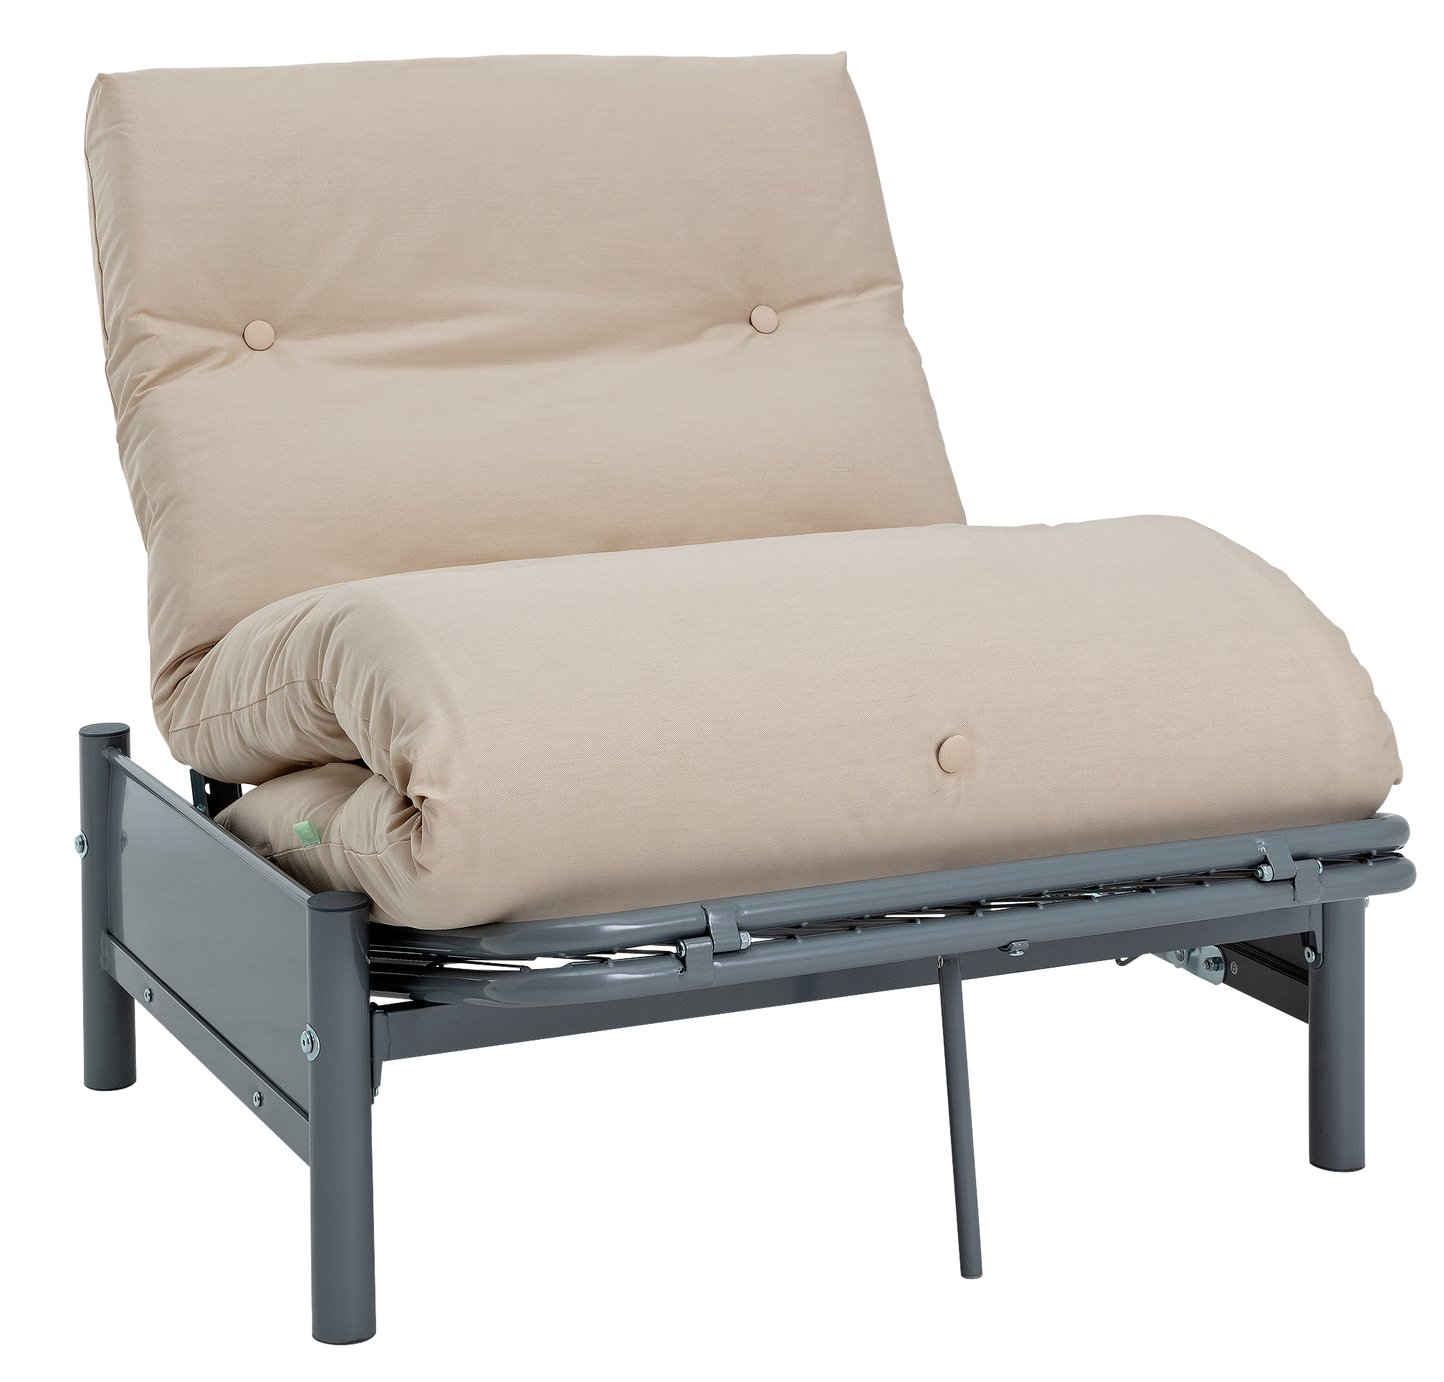 home single futon metal sofa bed with mattress   natural single sofa beds chairbeds and futons   argos  rh   argos co uk